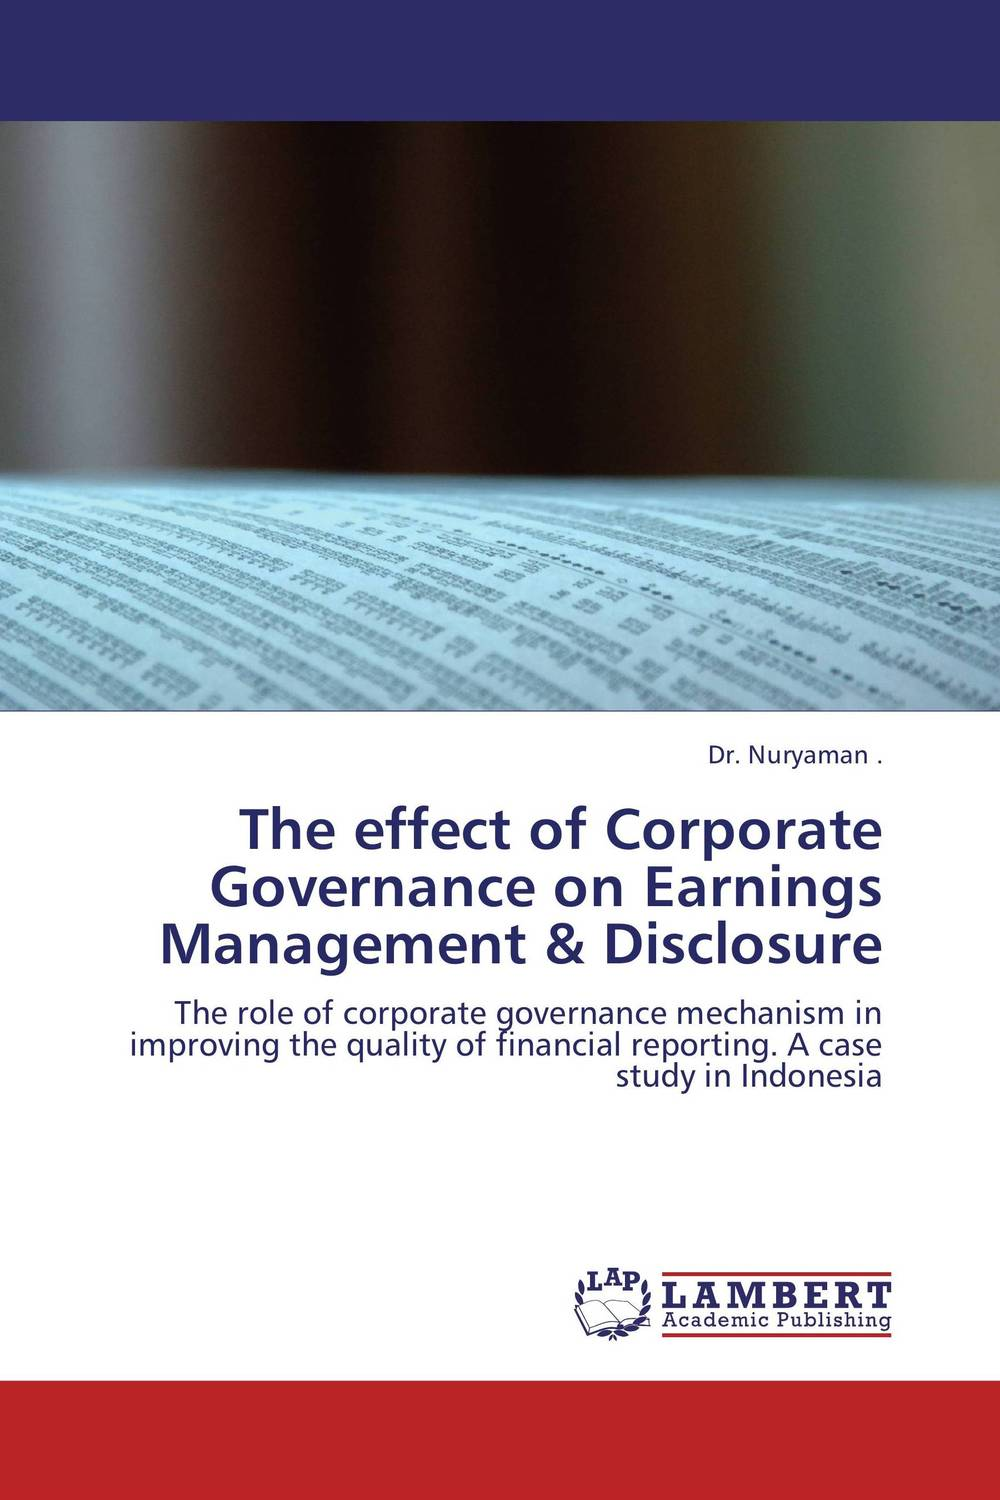 The effect of Corporate Governance on Earnings Management & Disclosure dysfunctions in accounting and the role of corporate lobbying